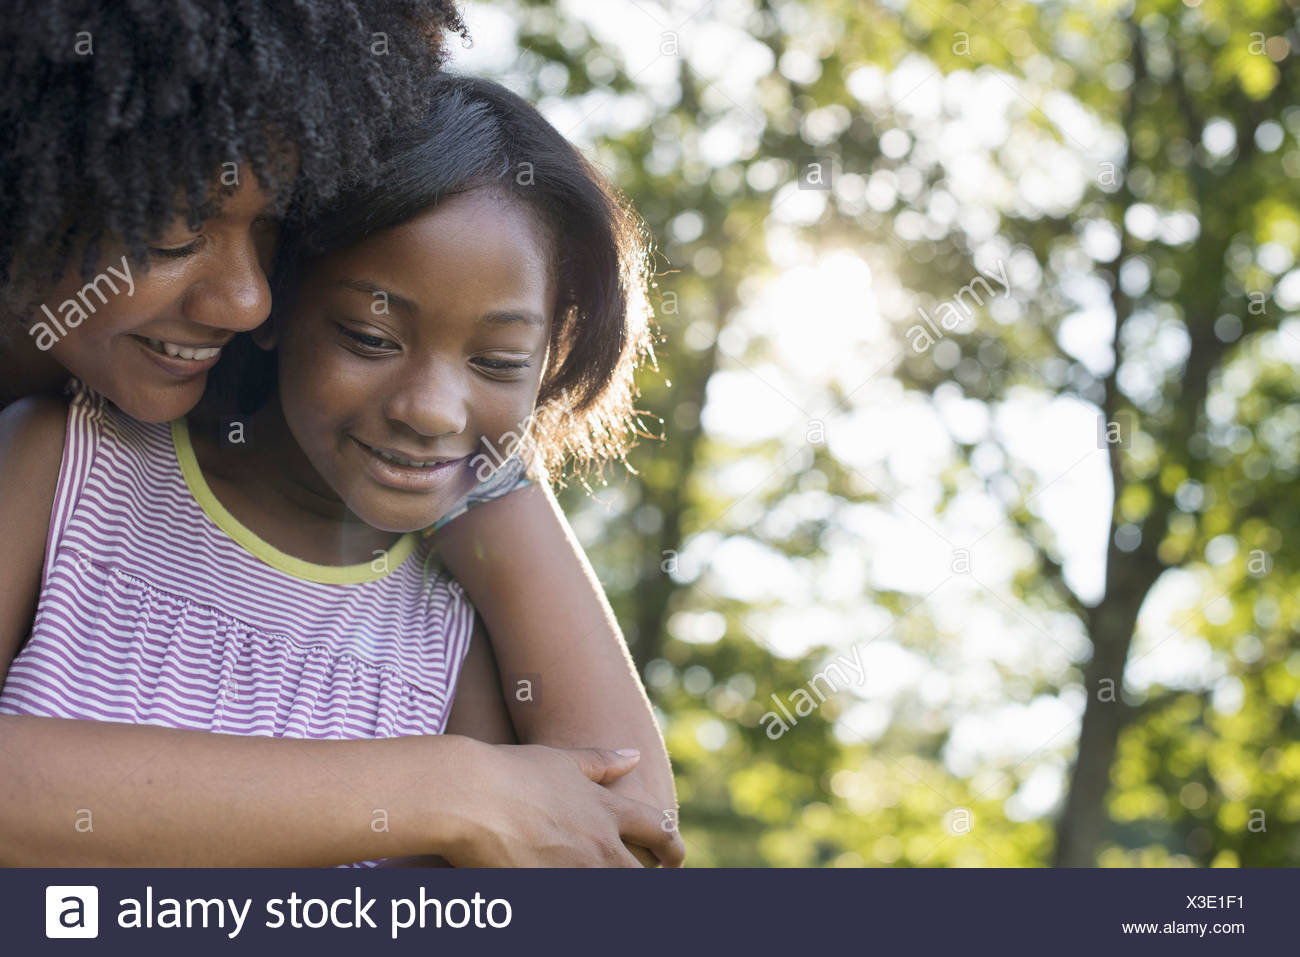 A young woman and a child hugging - Stock Image